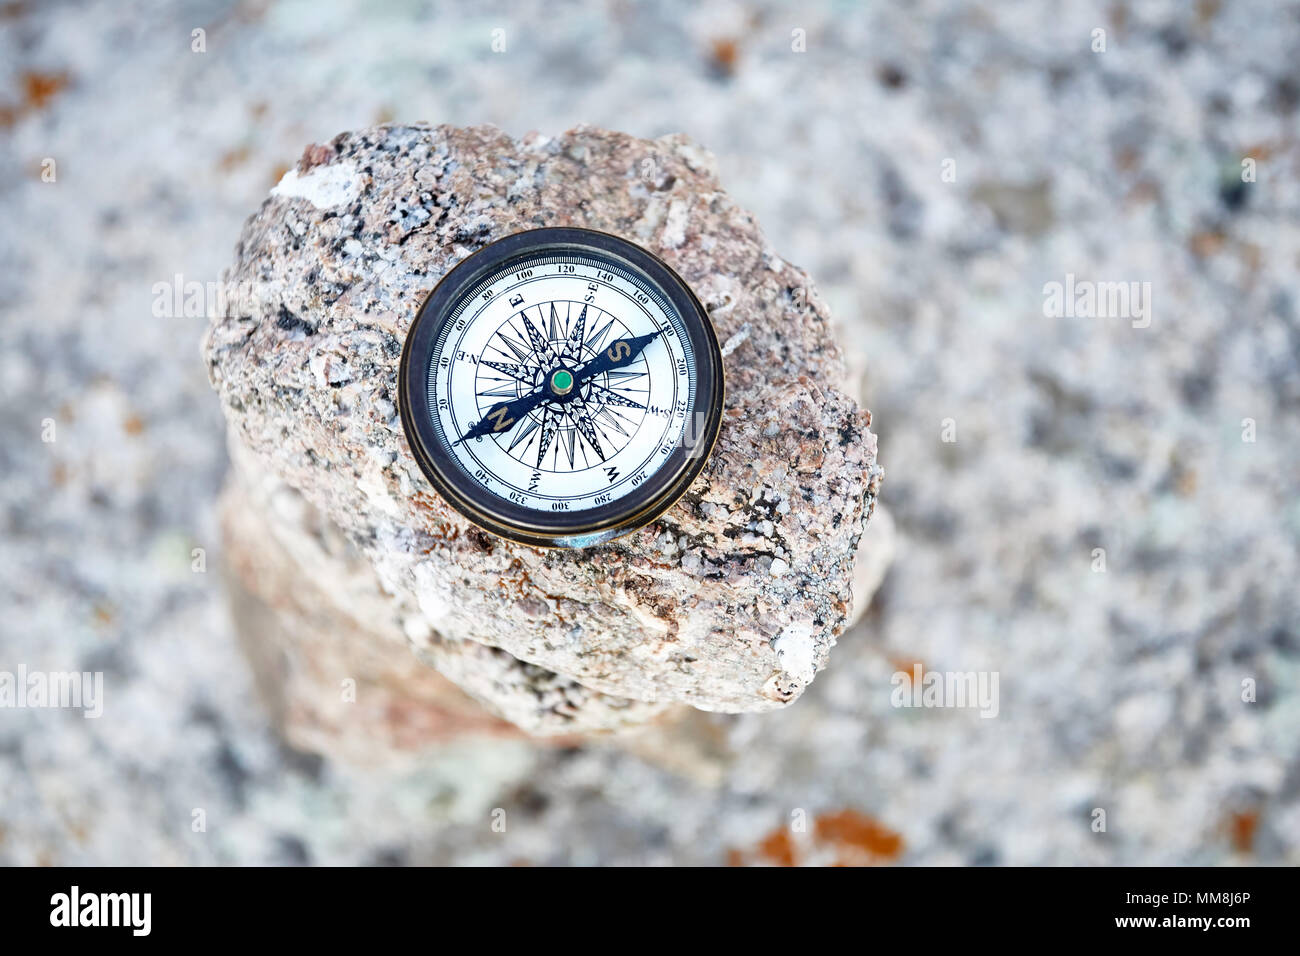 Round Vintage Compass on the stone background. Travel and adventure concept. - Stock Image